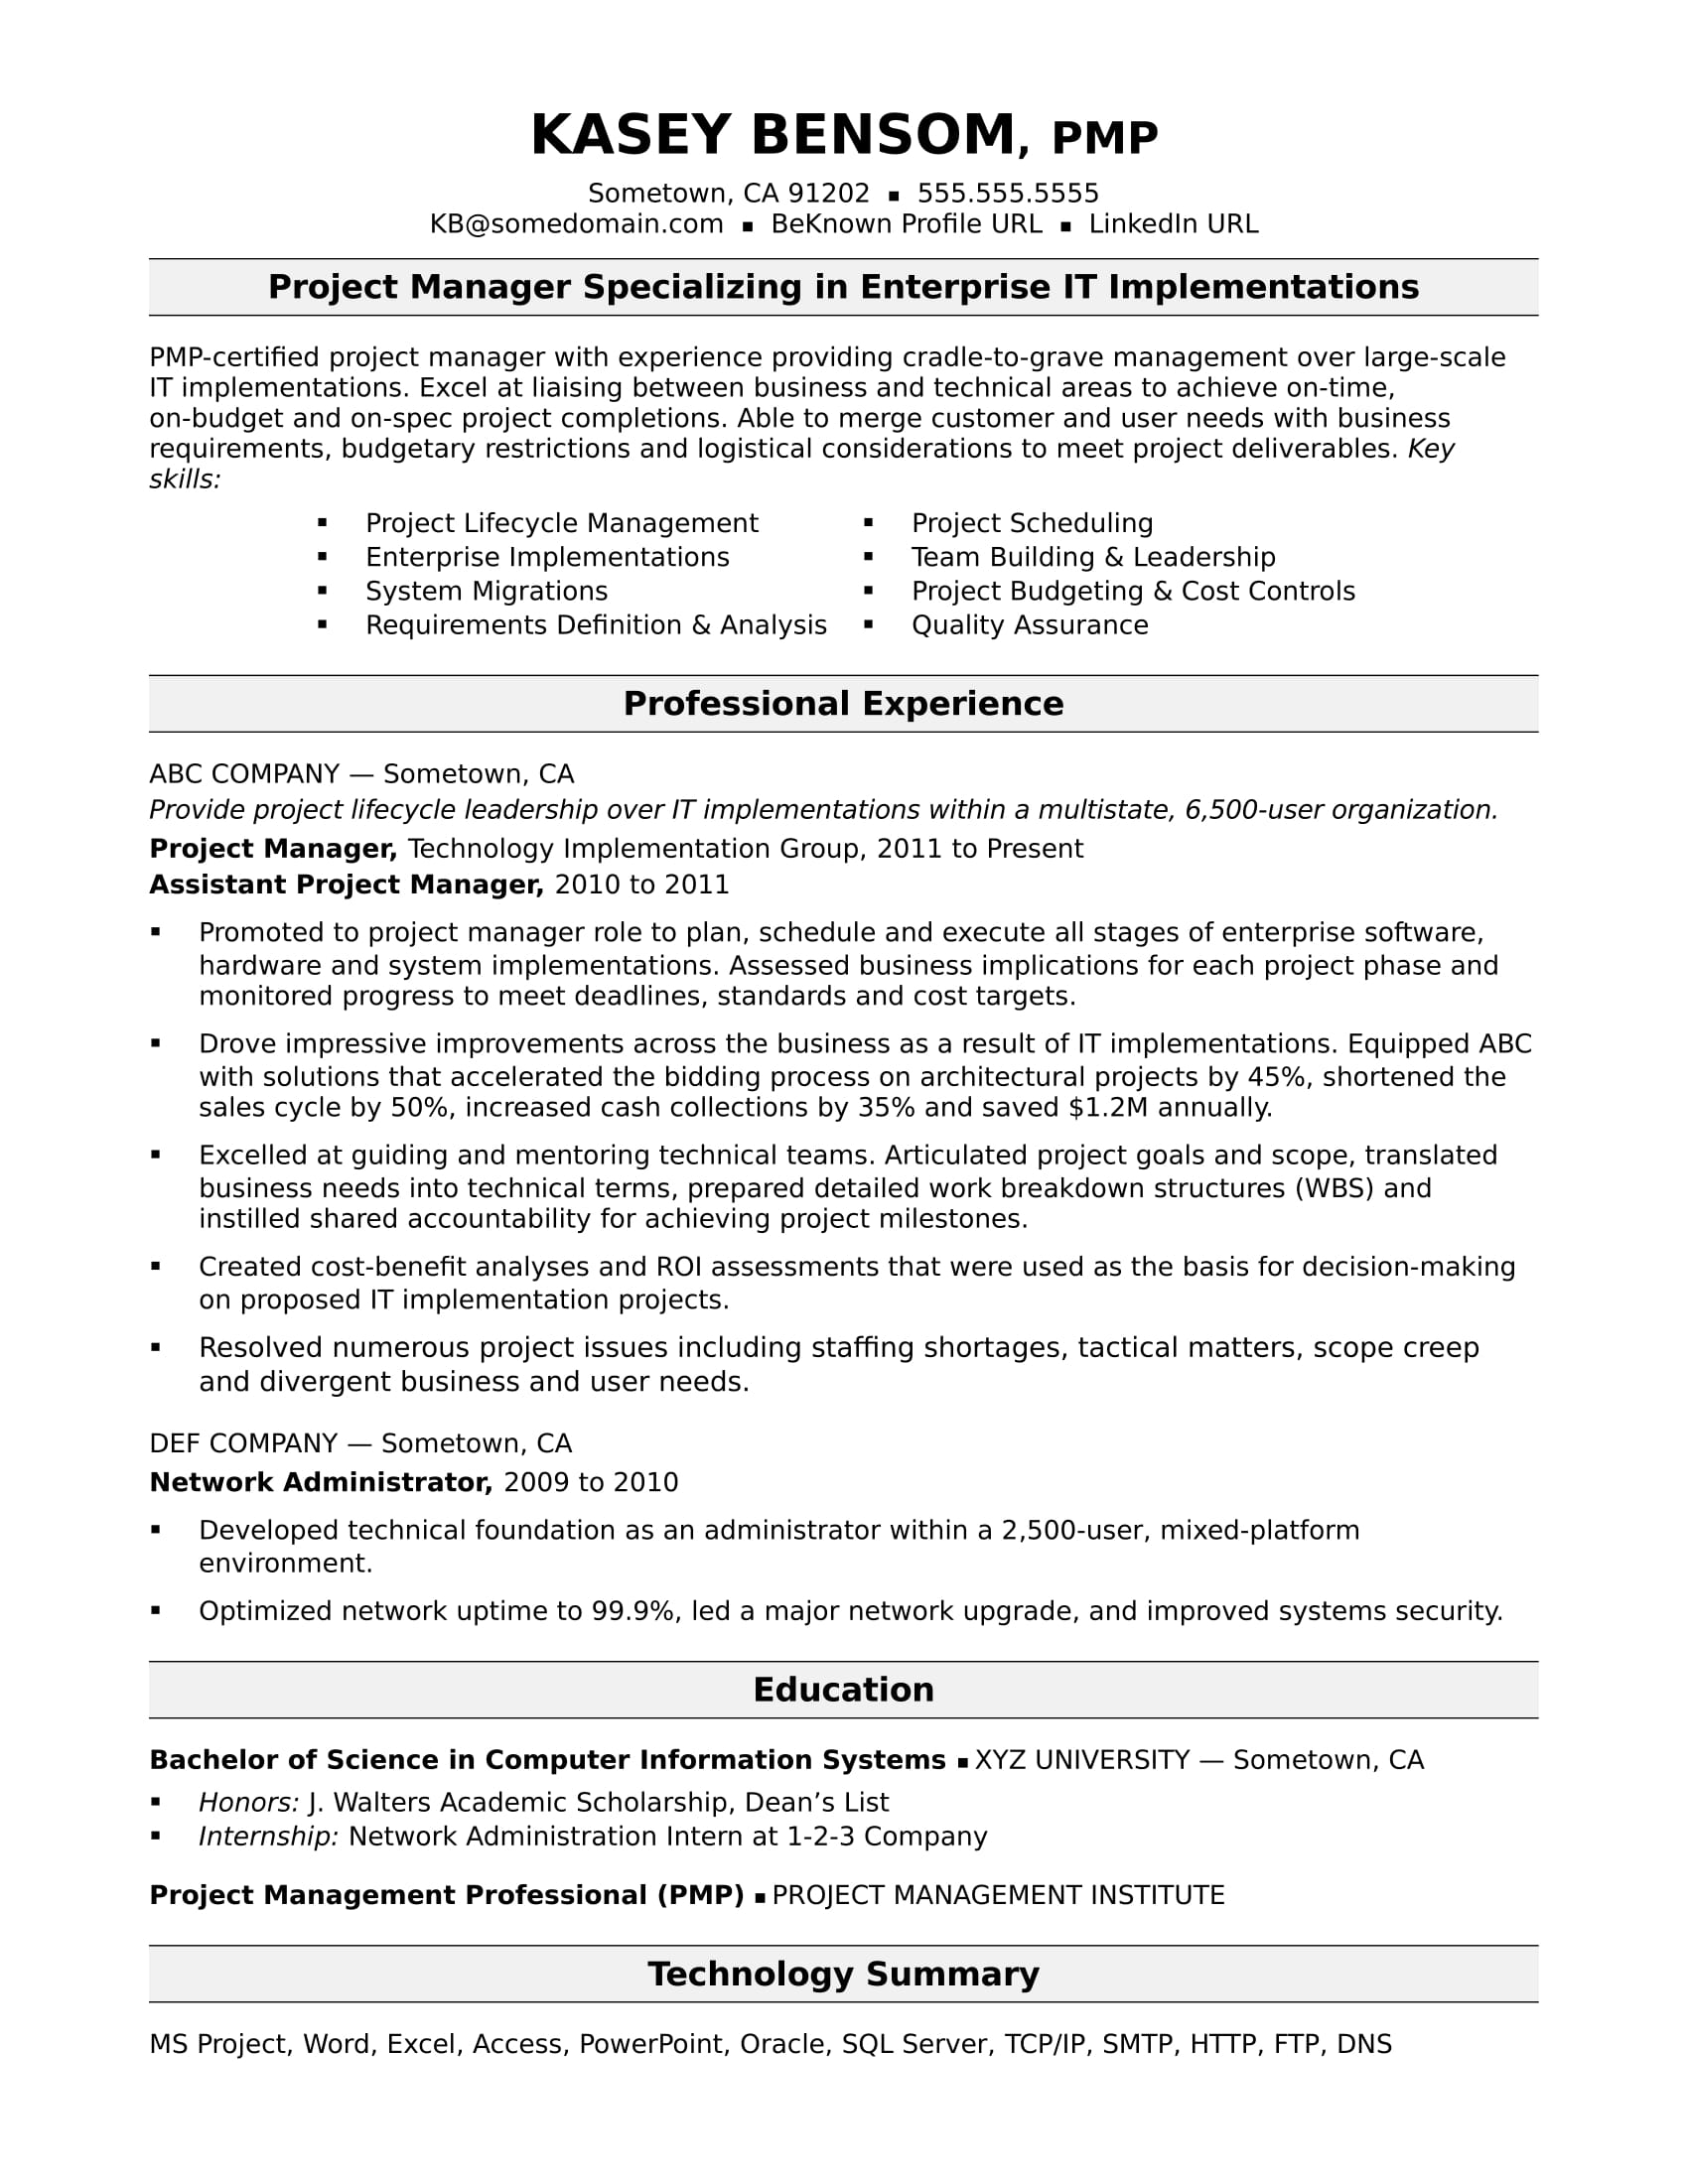 sample resume for midlevel it project manager monster program skills combination template Resume Program Manager Skills Resume